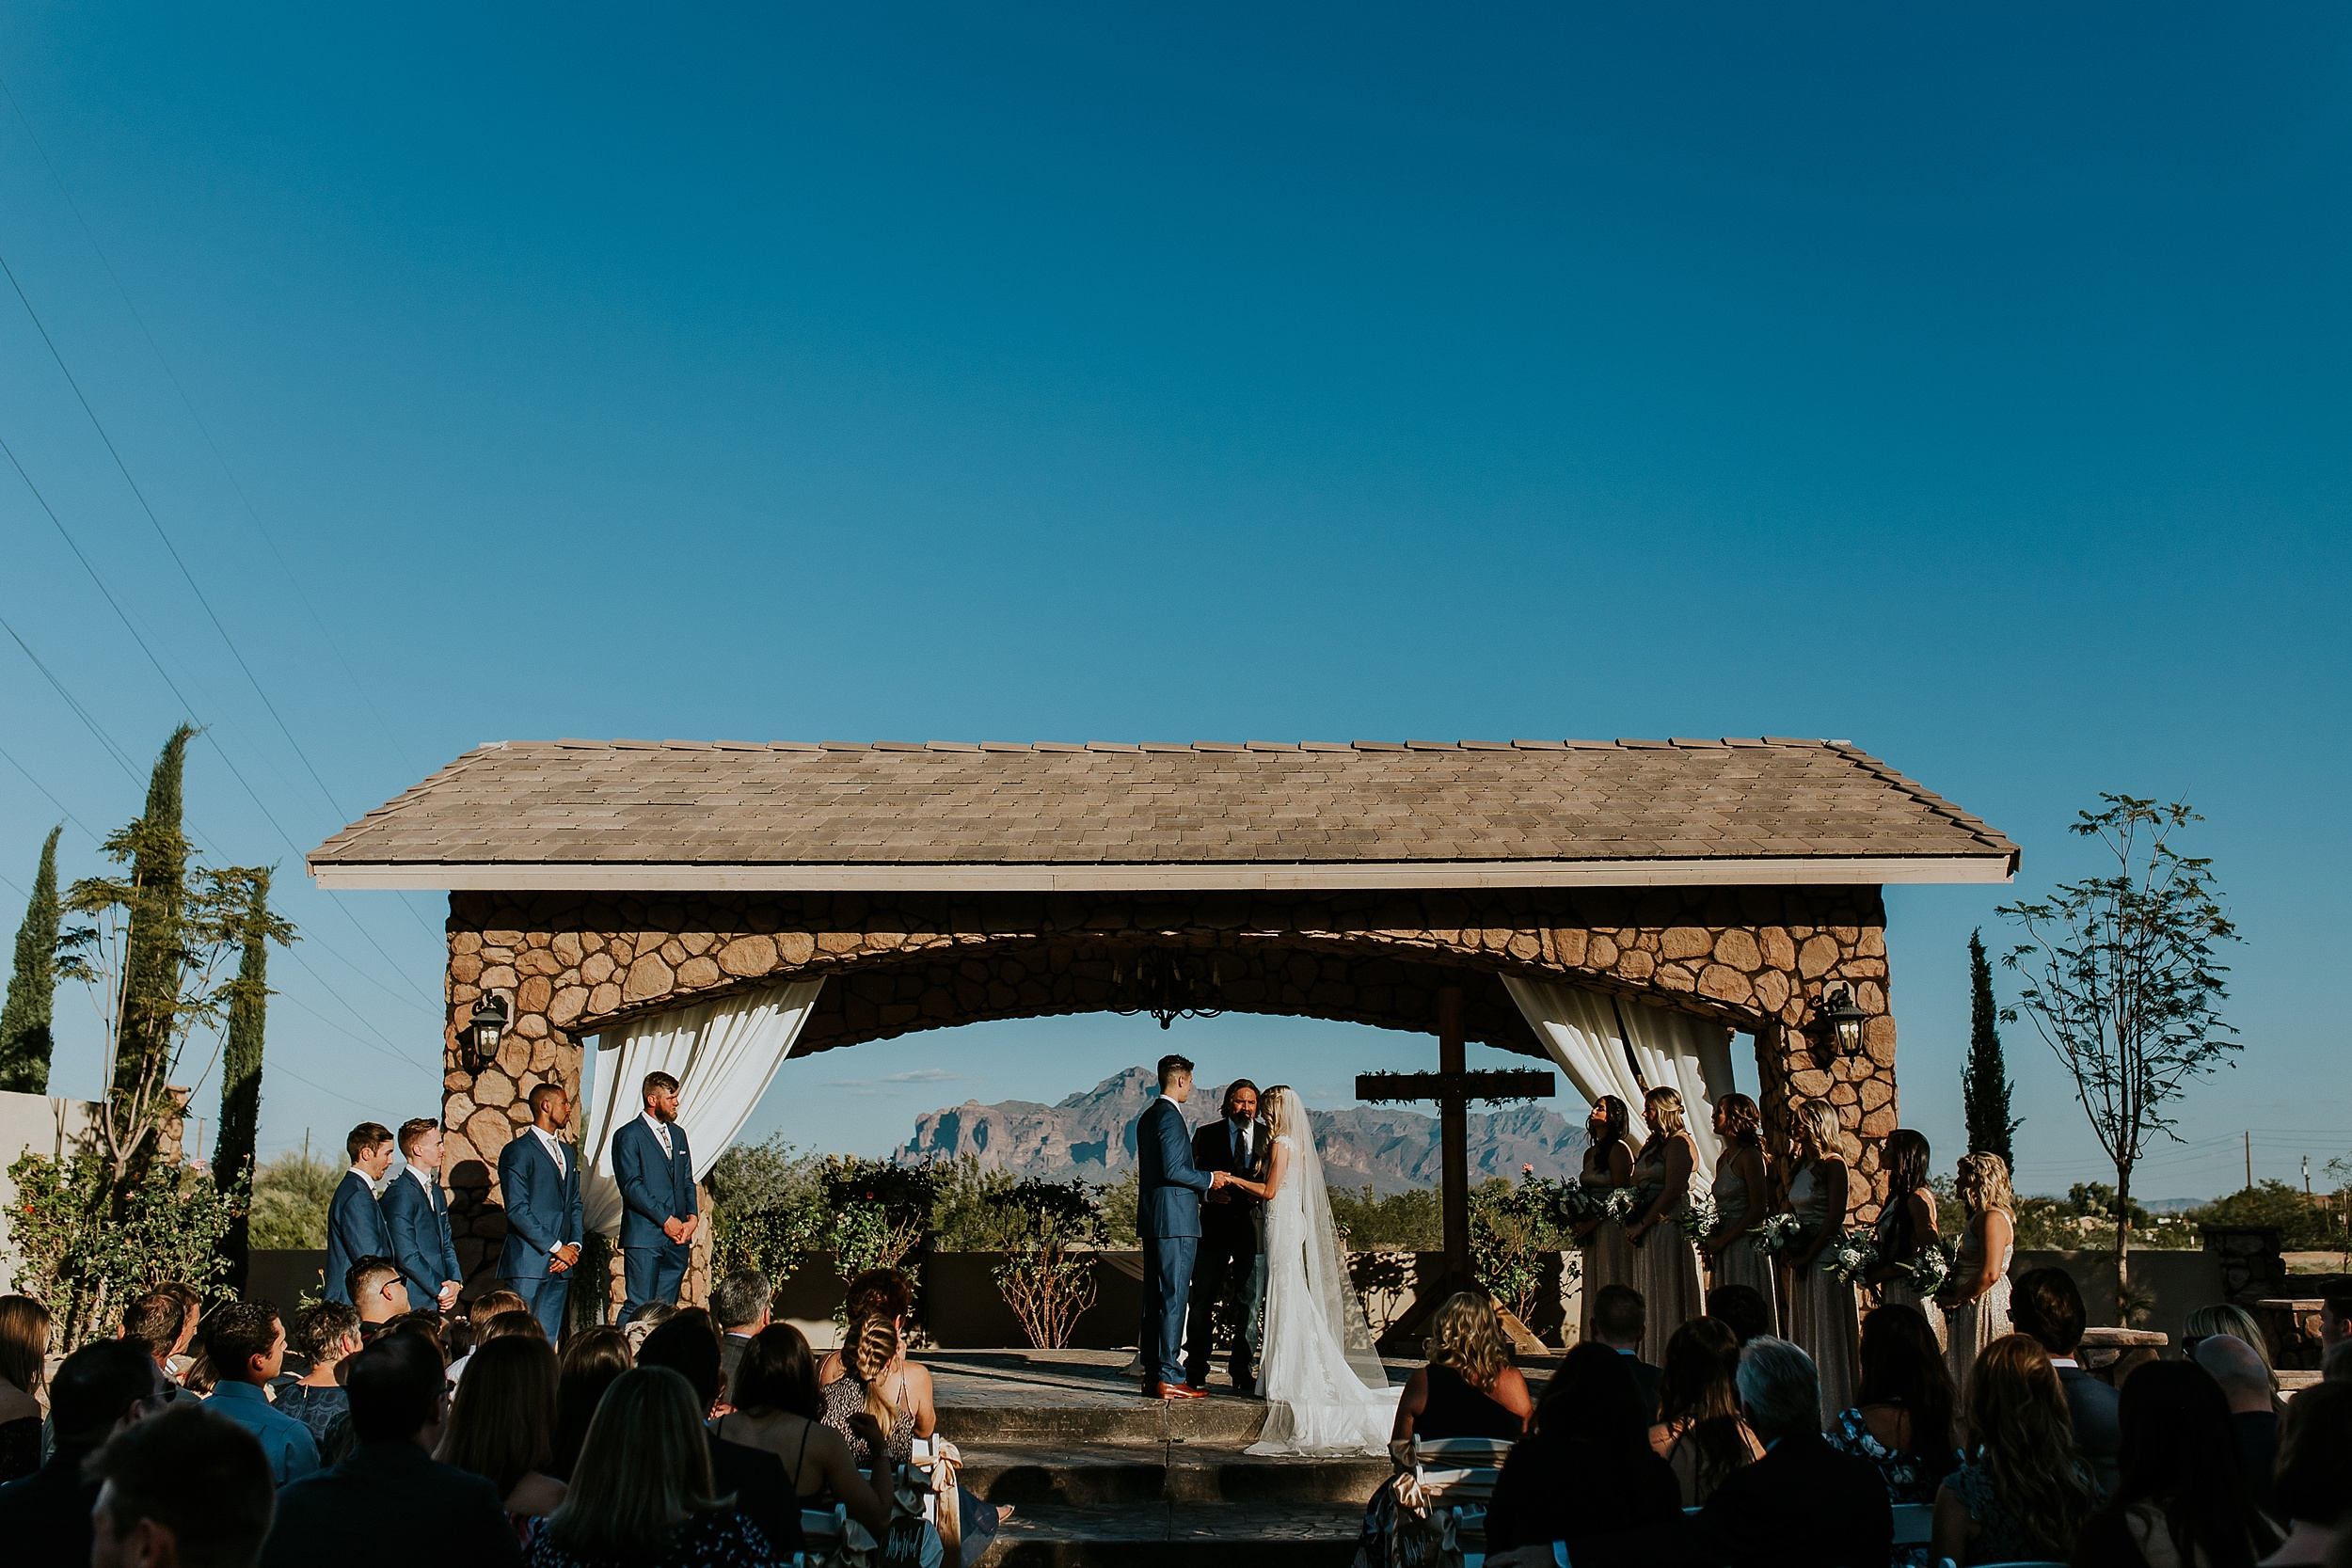 Meg+Bubba_Wedding_Details_SuperstitionManor_Venue_Arizona-3.jpg